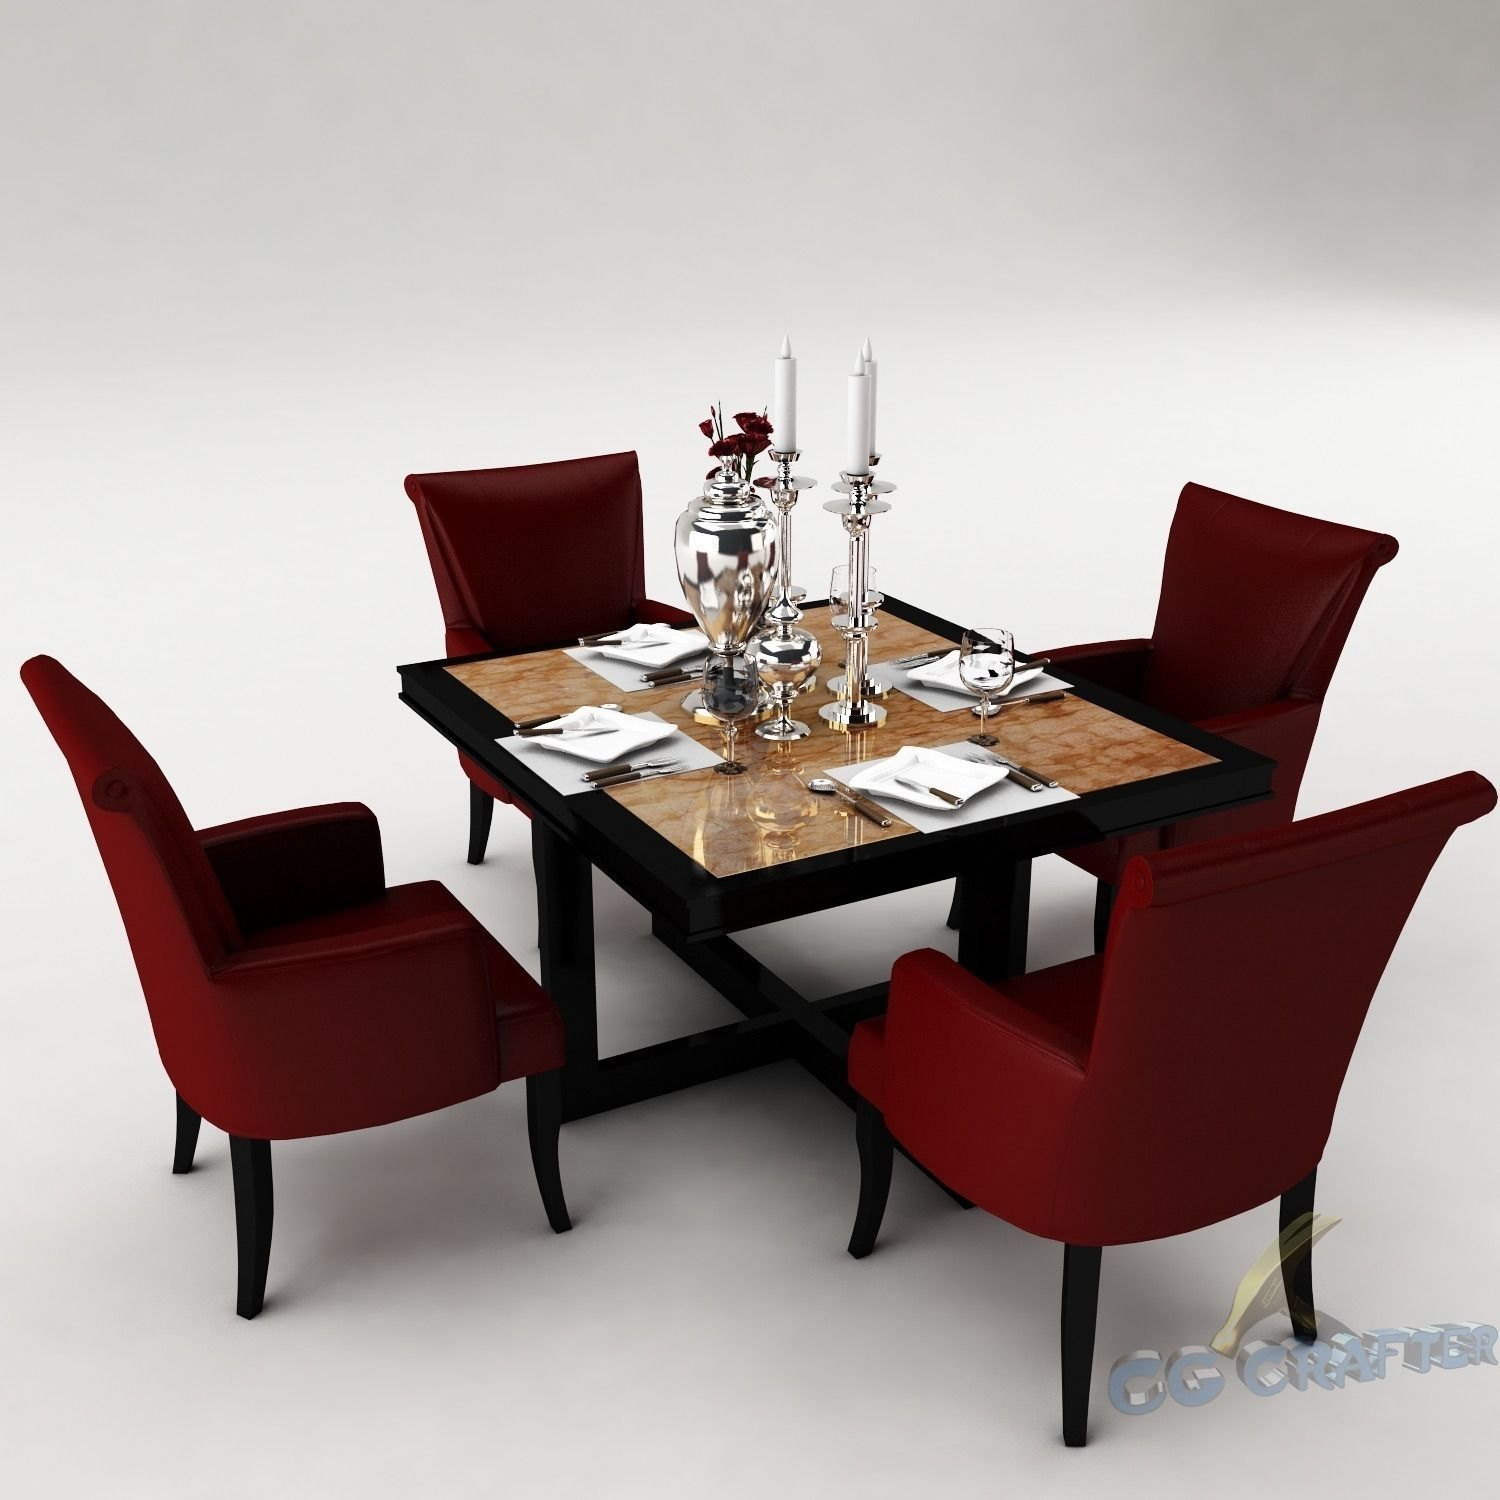 Dining Table Models dining table set 3d model room | cgtrader